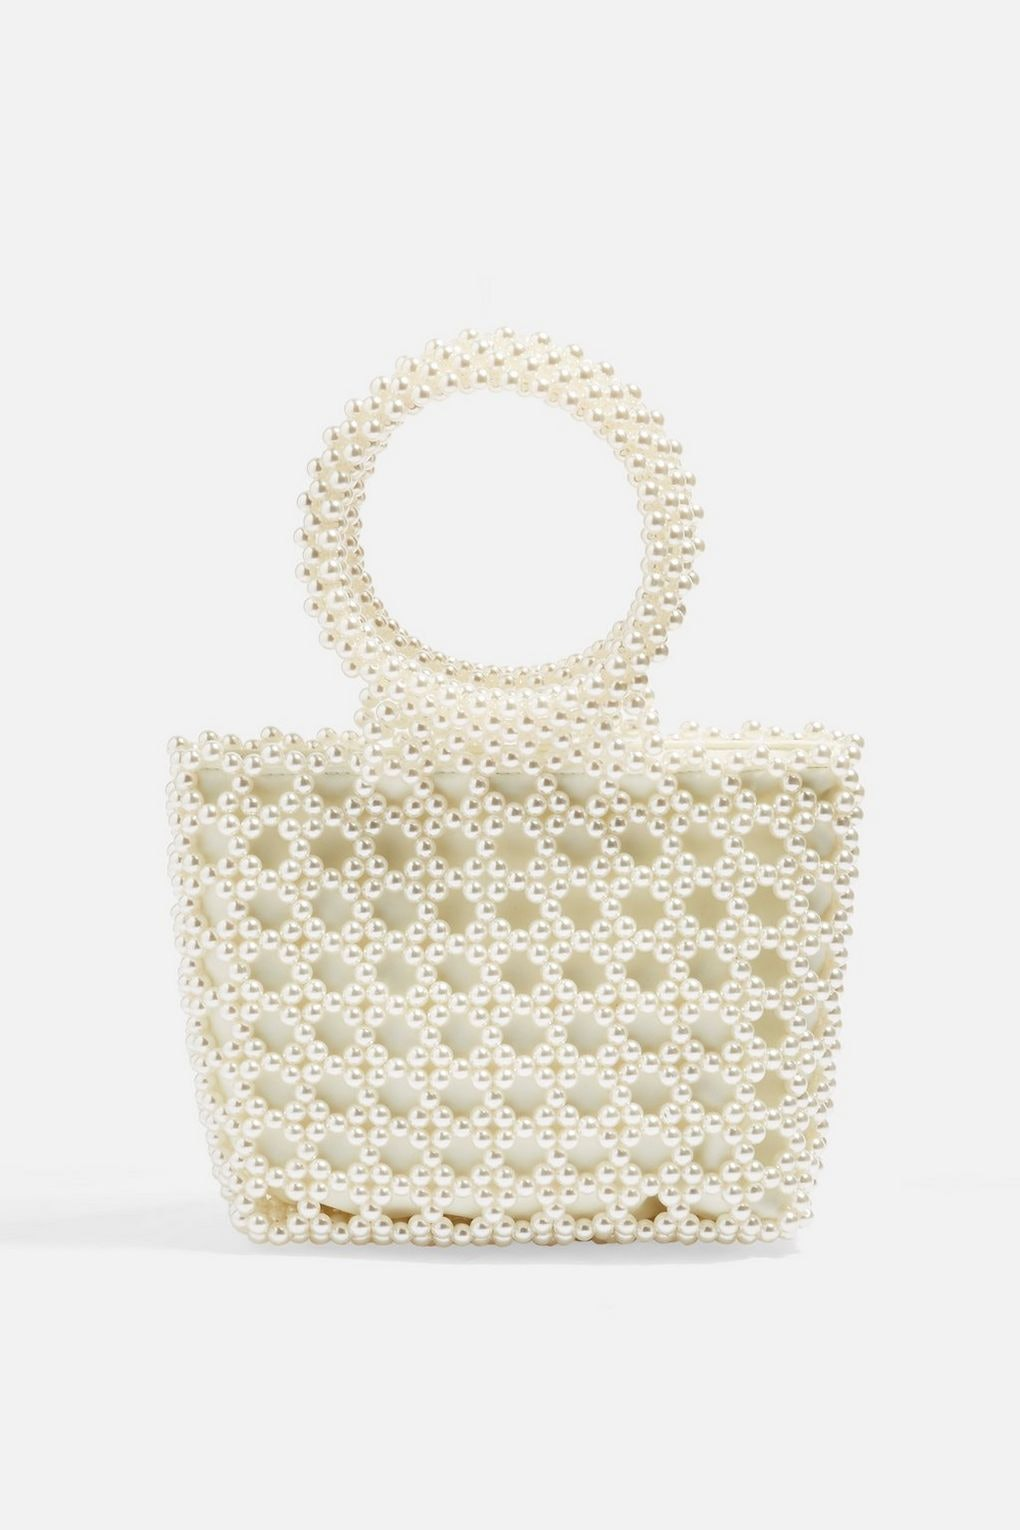 c0533cb24cec The Beaded Bag Trend Is Here To Stay, So Here's Some Chic Winter Updates